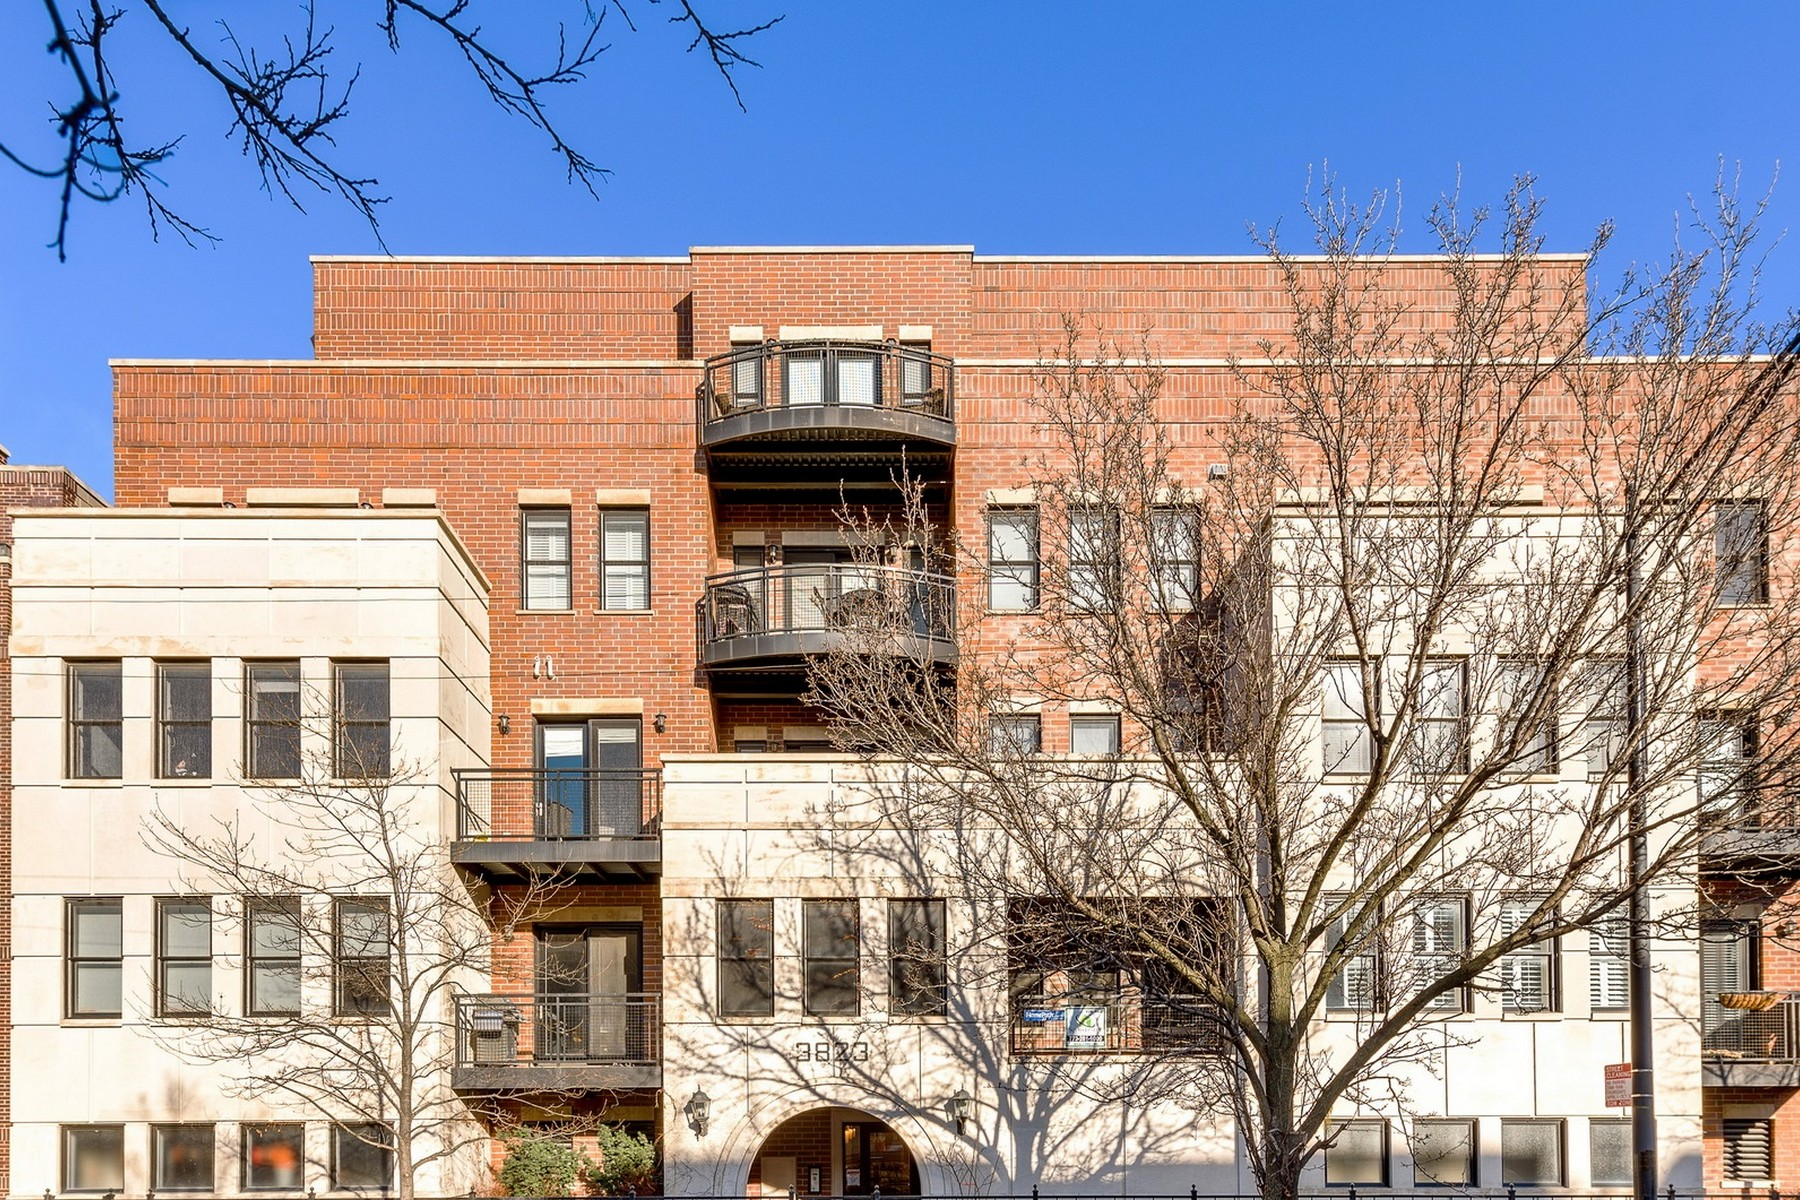 Кондоминиум для того Продажа на Oasis in the Southport Corridor 3823 N Ashland Avenue Unit 206, Lakeview, Chicago, Иллинойс, 60613 Соединенные Штаты